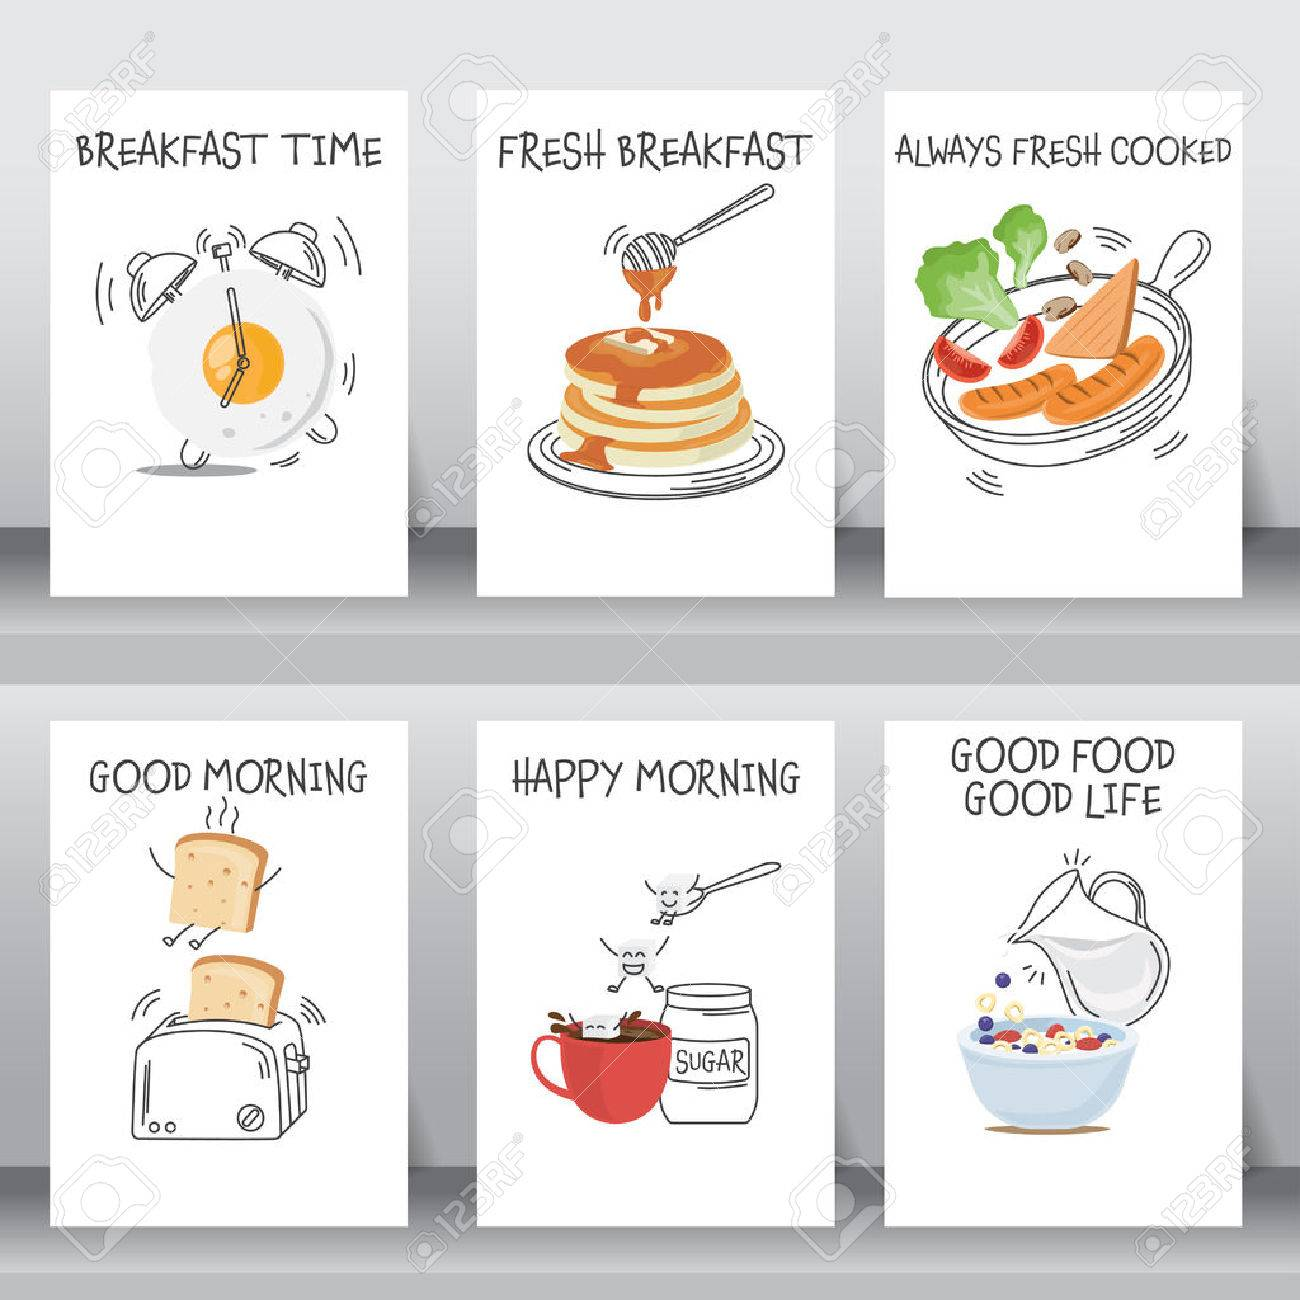 funny breakfast Posters and background set. flat and doodle design. there are egg, coffee , cereal with milk, pancake, bread, vegetable and hotdog layout template in A4 size. vector illustration. - 54795280